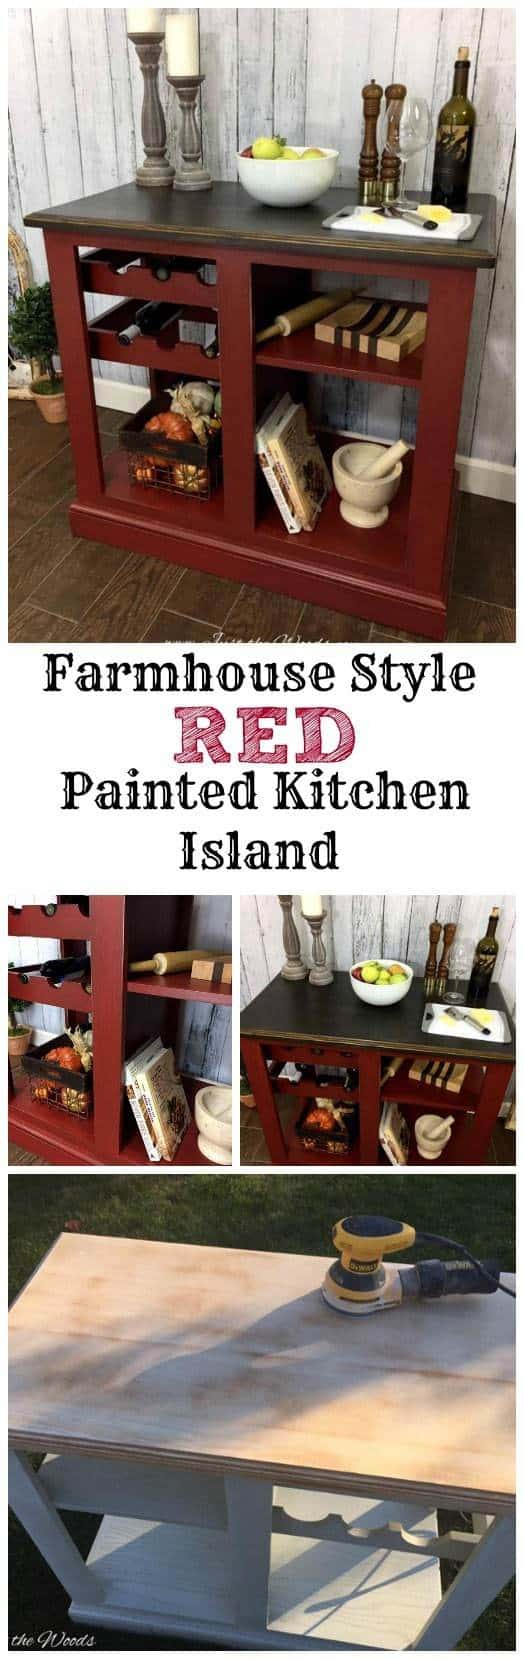 Painted and glazed kitchen island in a farmhouse or tuscan style red | red kitchen island | painted kitchen island | red kitchen cart | red kitchen island | red kitchen | wood kitchen island | kitchen island red | kitchen cart red | kitchen island with storage |